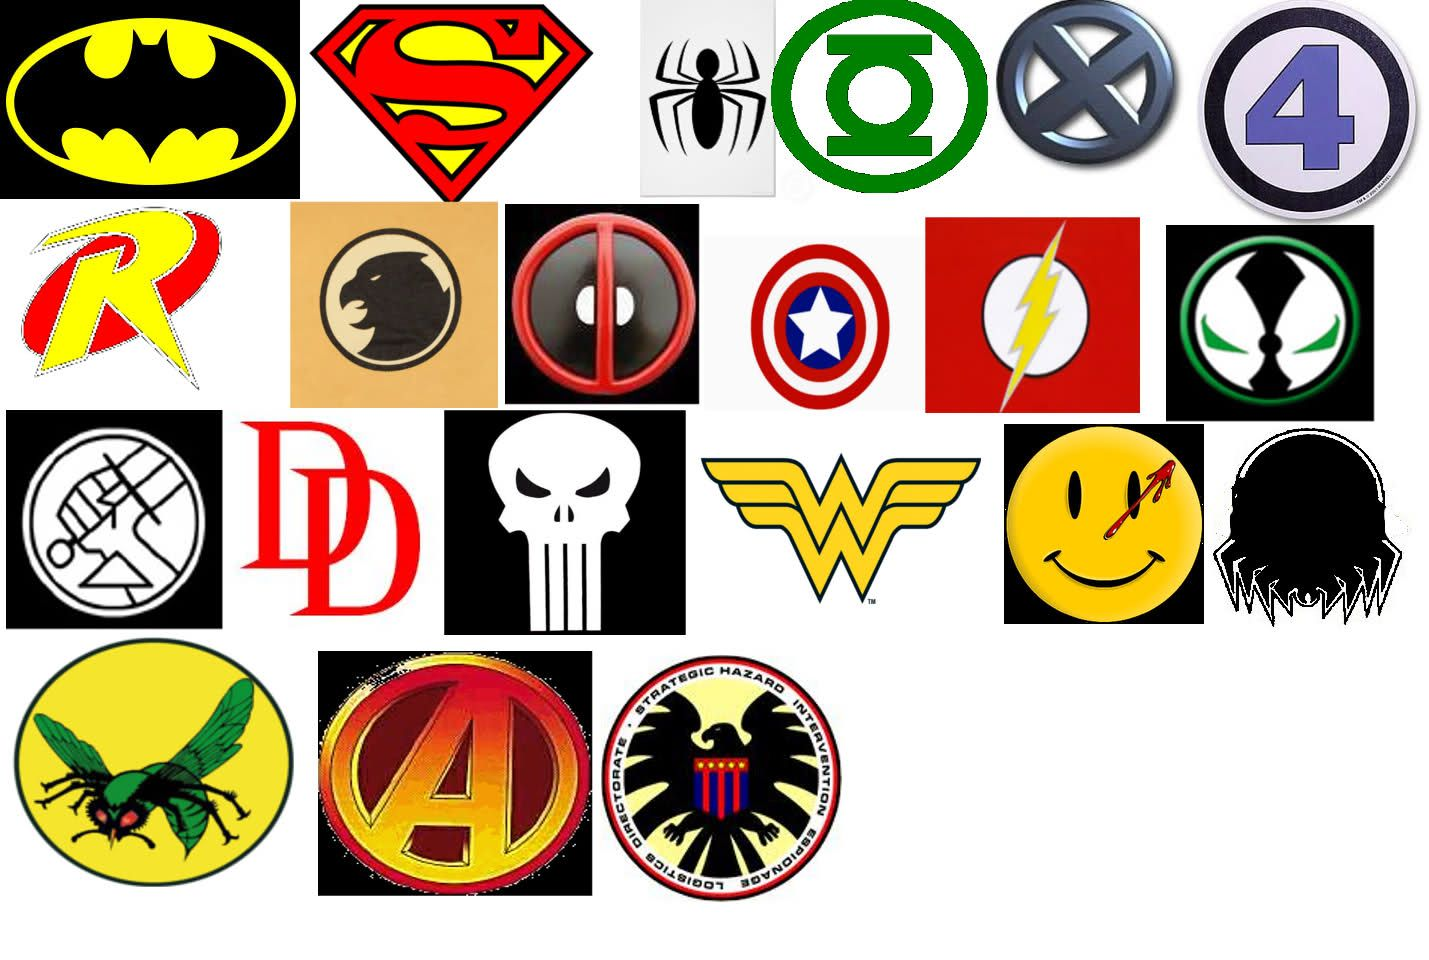 Superhero Logos List And Names Image Galleries Imagekb Super